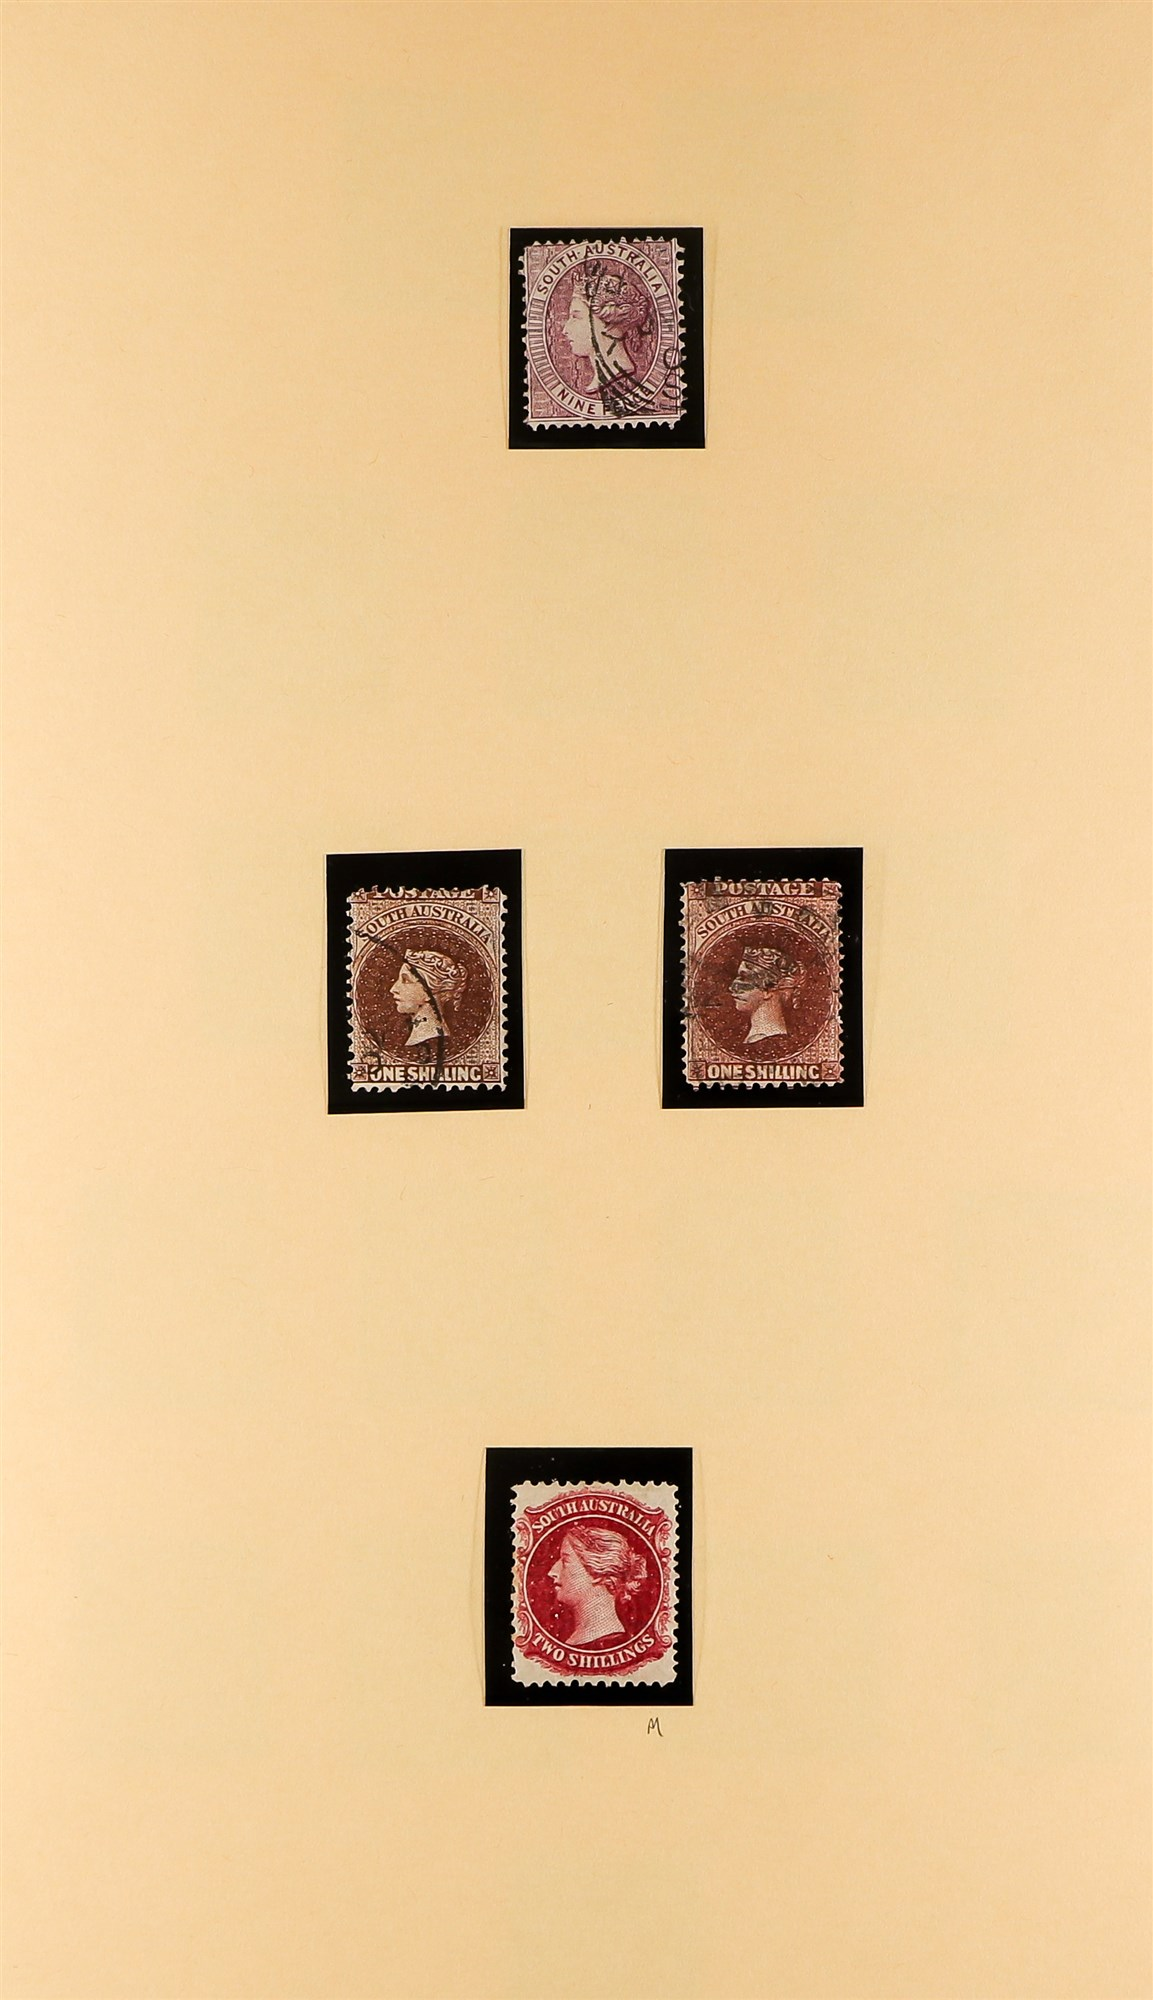 AUSTRALIAN STATES SOUTH AUSTRALIA 1858-1912 mainly used collection incl.1858-9 First Roulettes all - Image 10 of 10